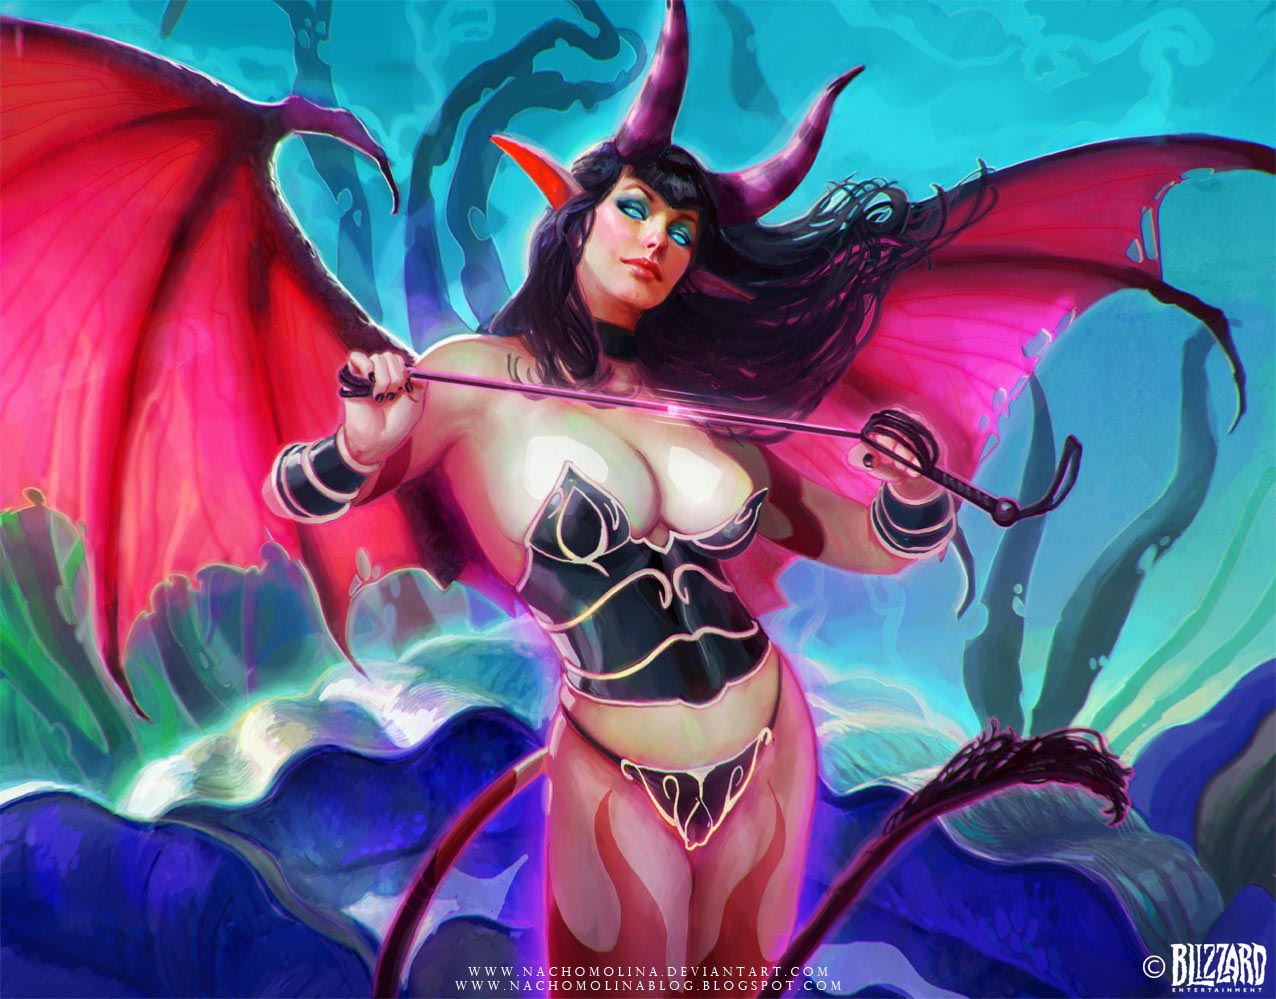 Jizzart warlock and succubus porn photos